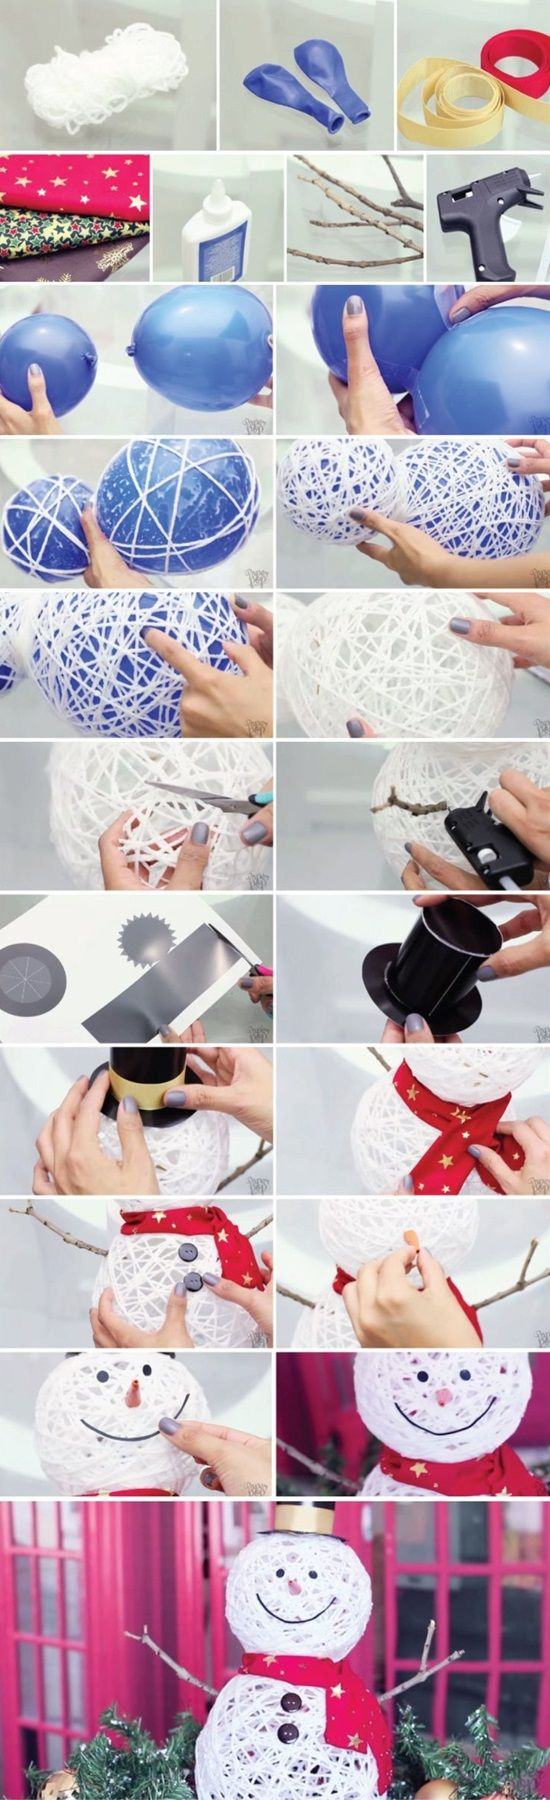 It would never feel like Christmas without snowman decorations all over your house. But you don't have to buy everything, you can easily create super cute snowman decorations yourself, using simple items you can find at your house. Take a look at these creative ideas for making your own snowman decorations this year.